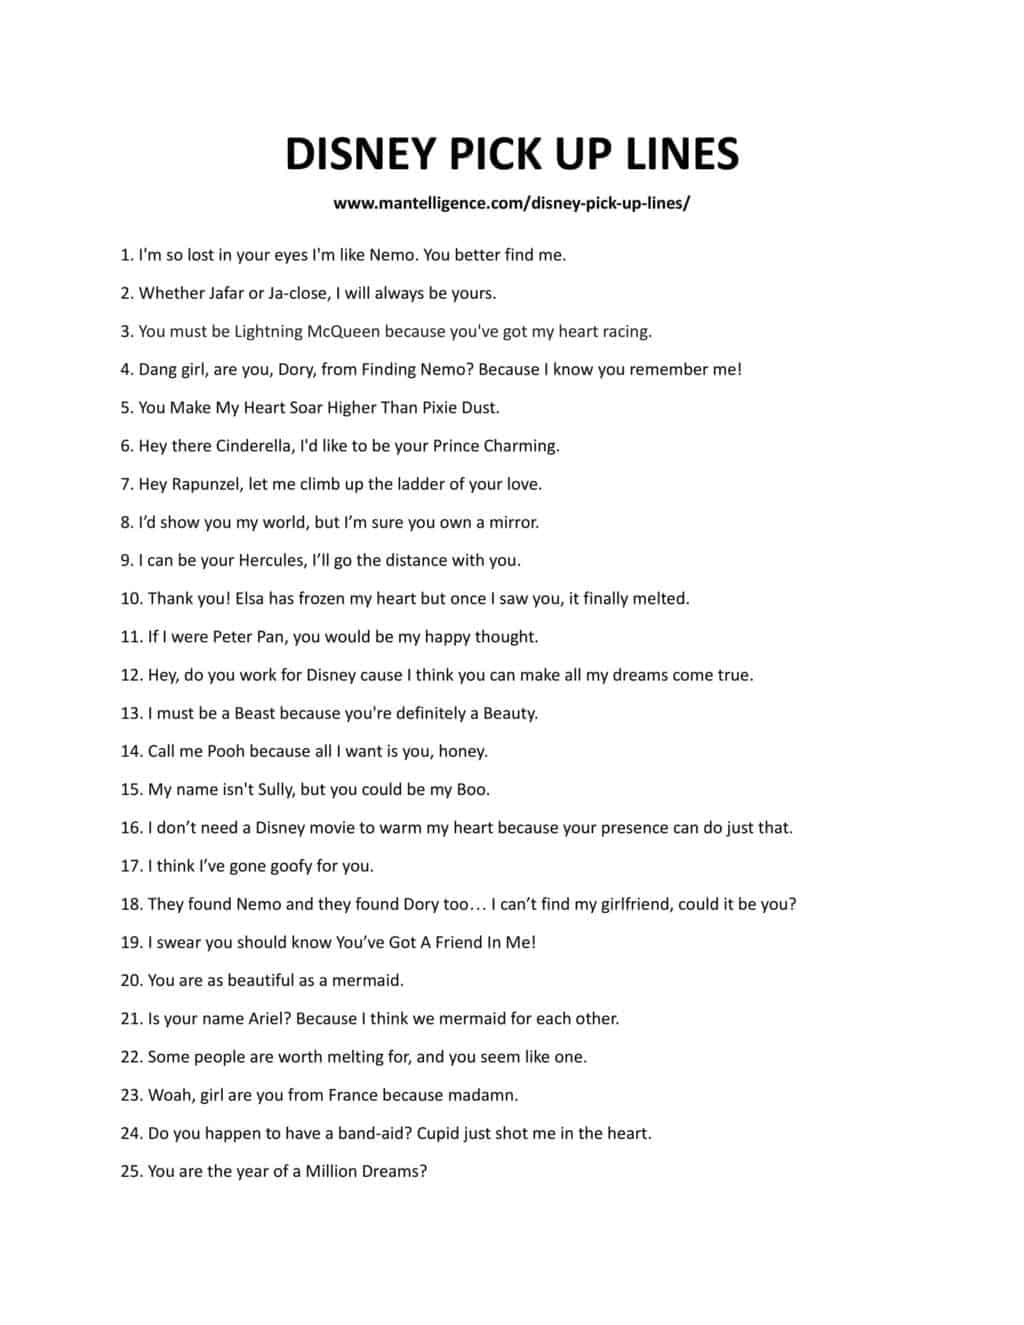 Downloadable and printable list of pick up lines as jpg or pdf